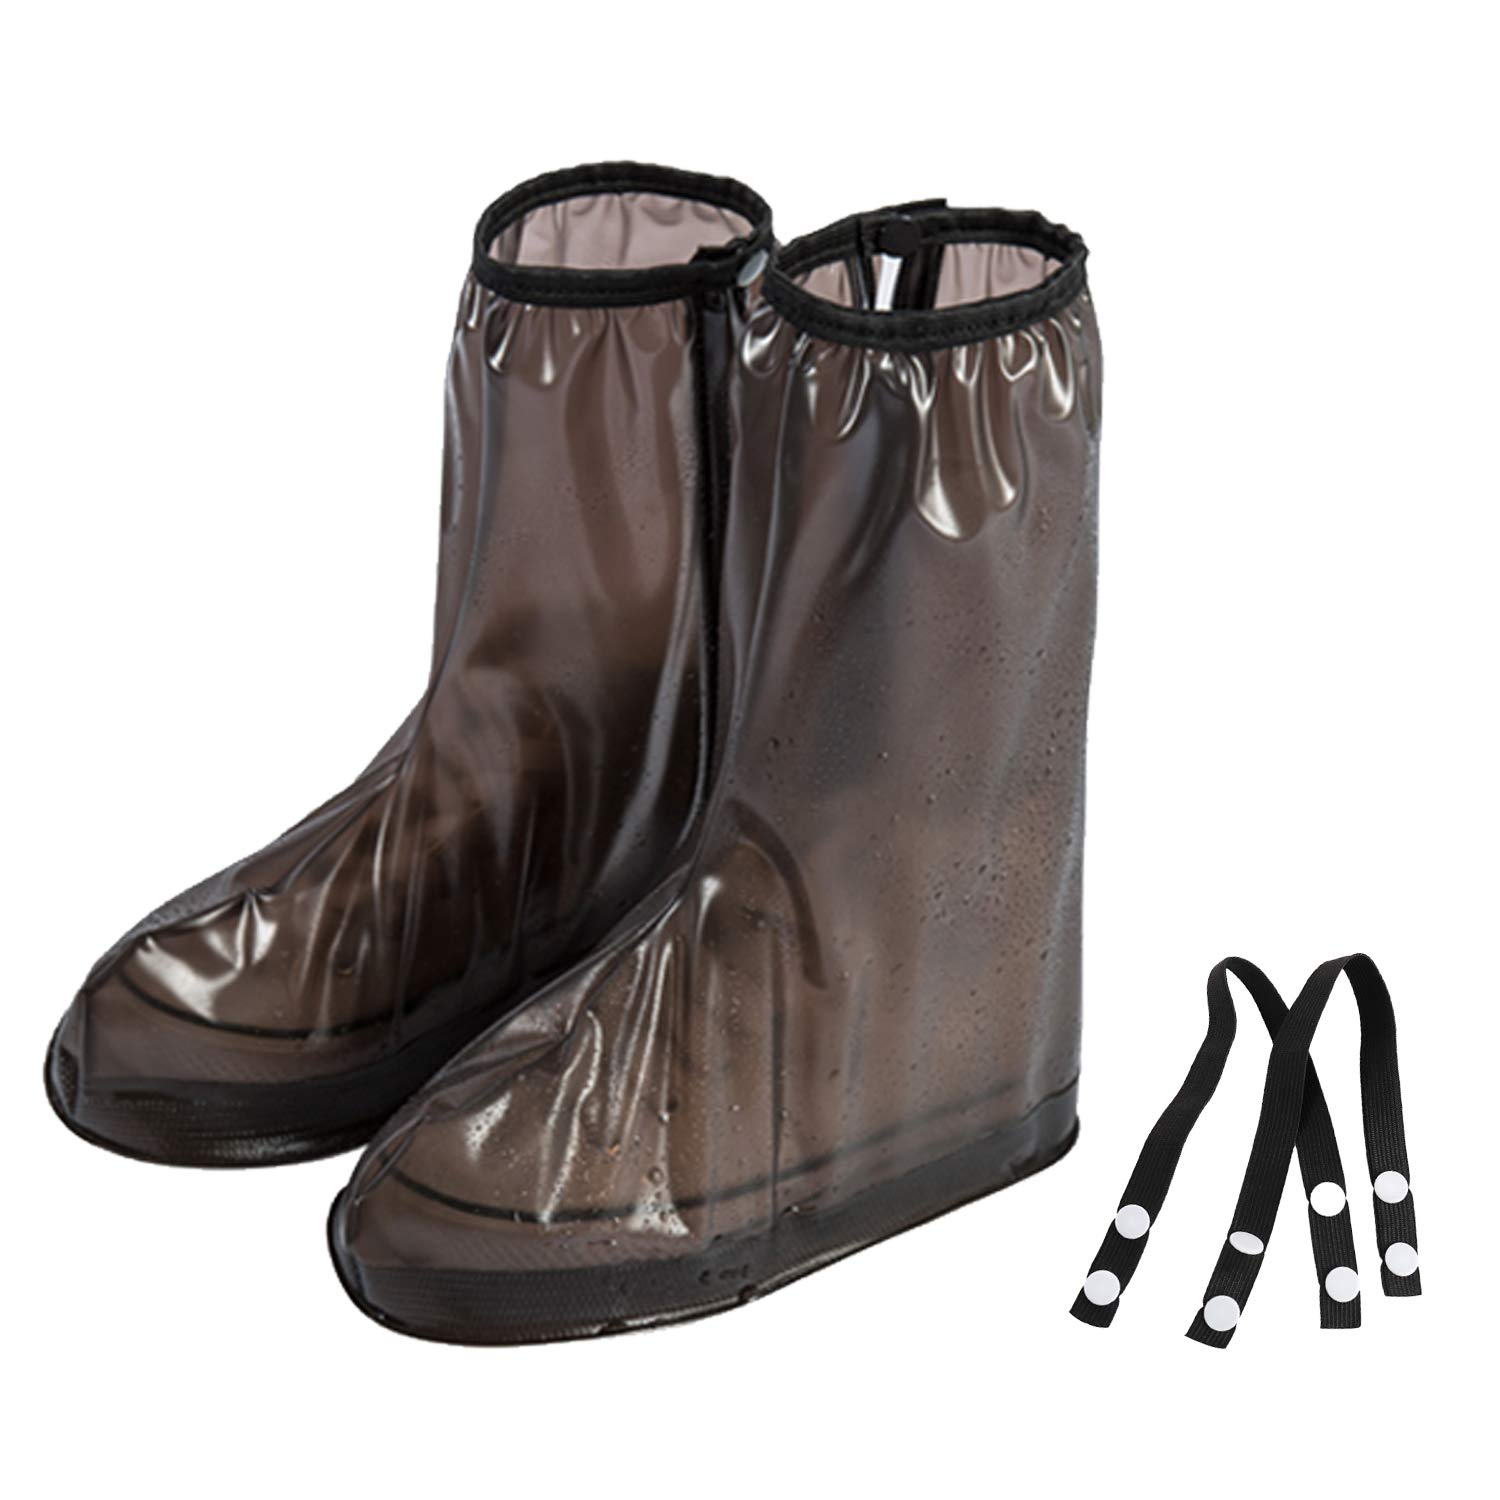 Brown Rain Shoe Covers Waterproof Boot Cover With Side Zipper Motorcycle Rain Boot Covers Reusable Man 3.5-4 Women 5-5.5 (S)